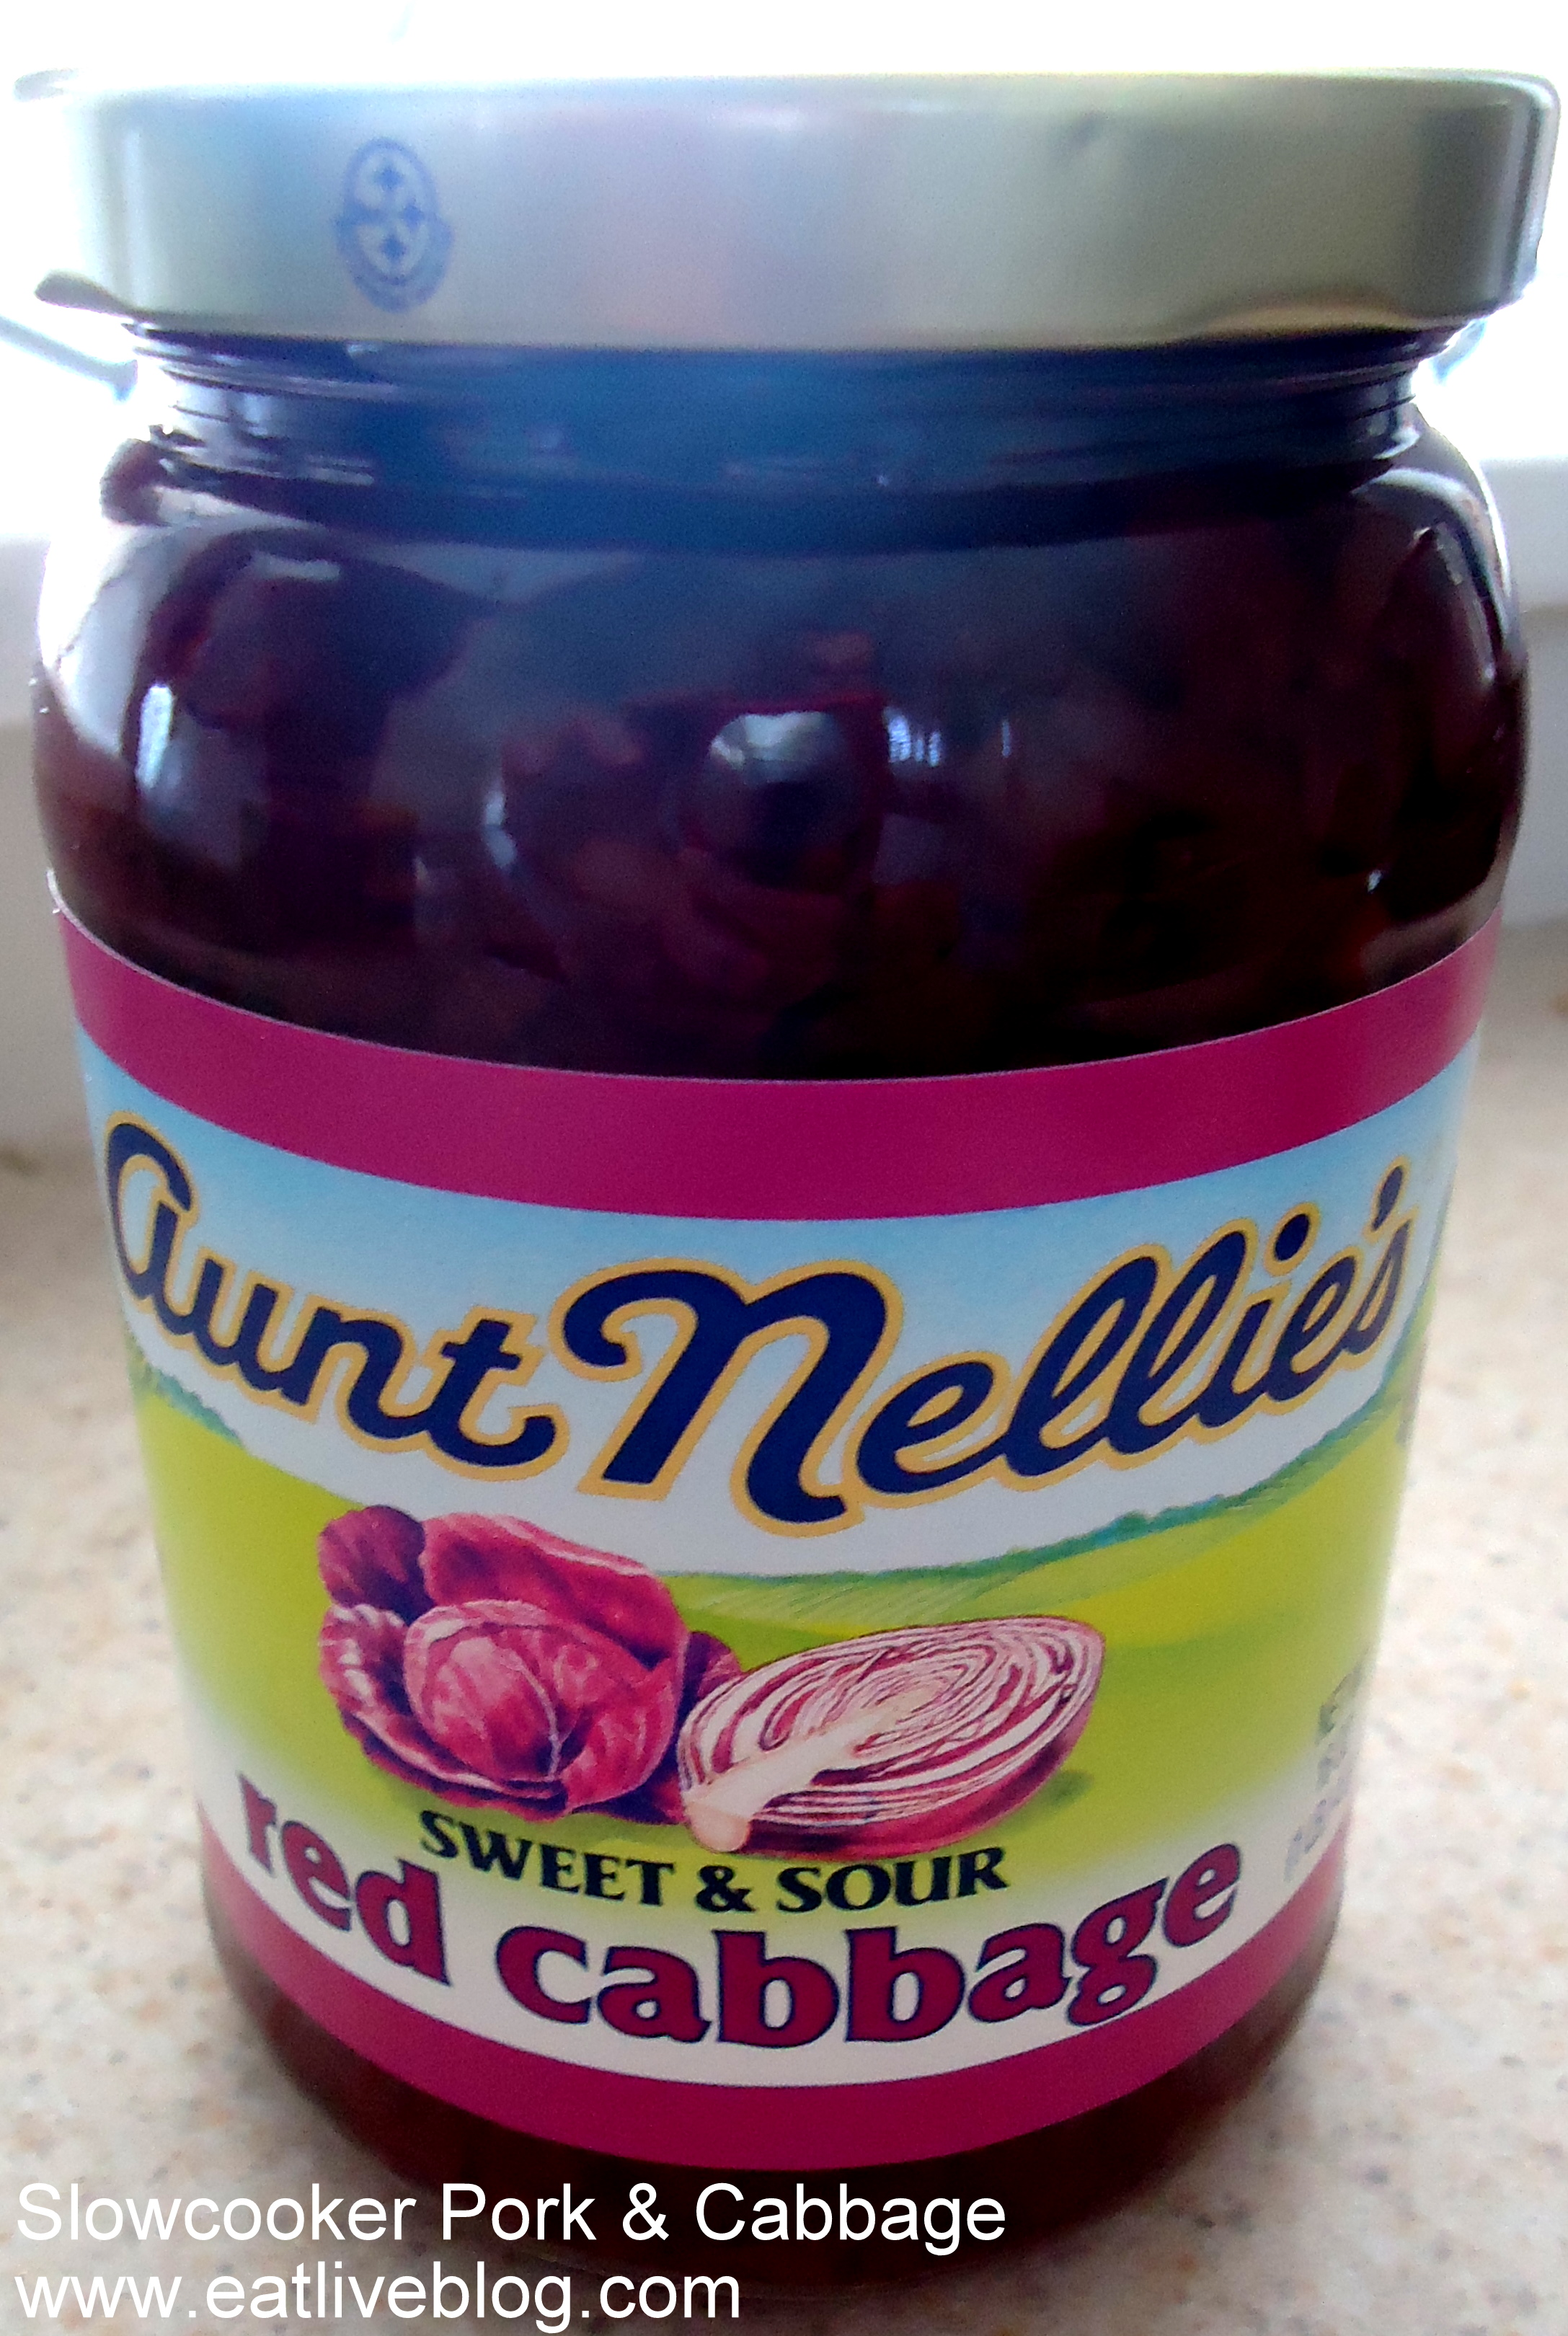 Luckily I had a can of Aunt Nellie's Sweet & Sour Red Cabbage on hand…